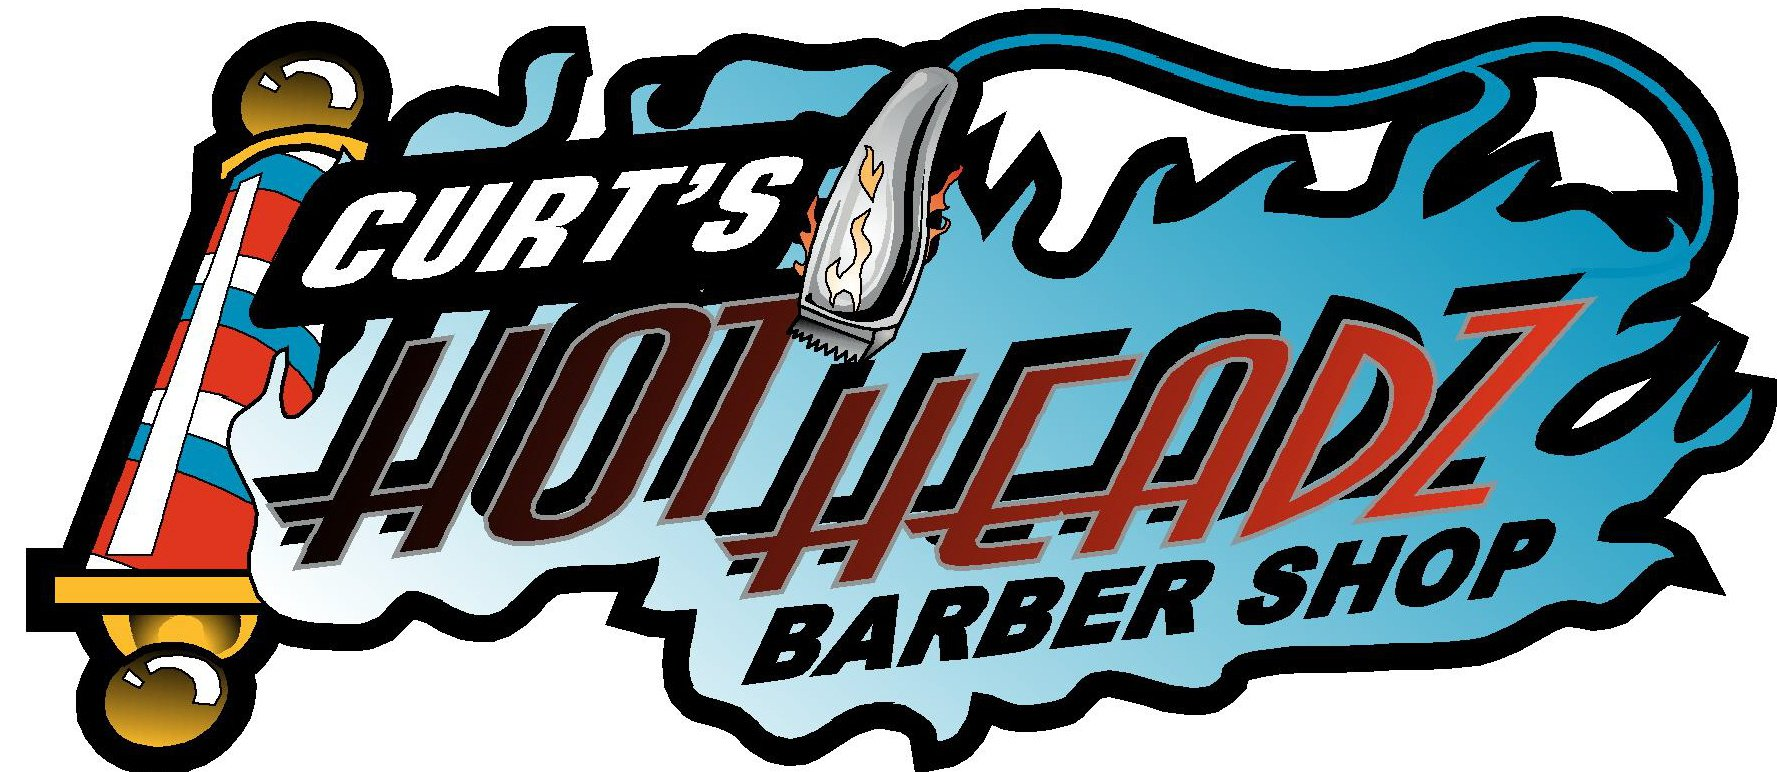 Curt's Hot Headz Barber Shop